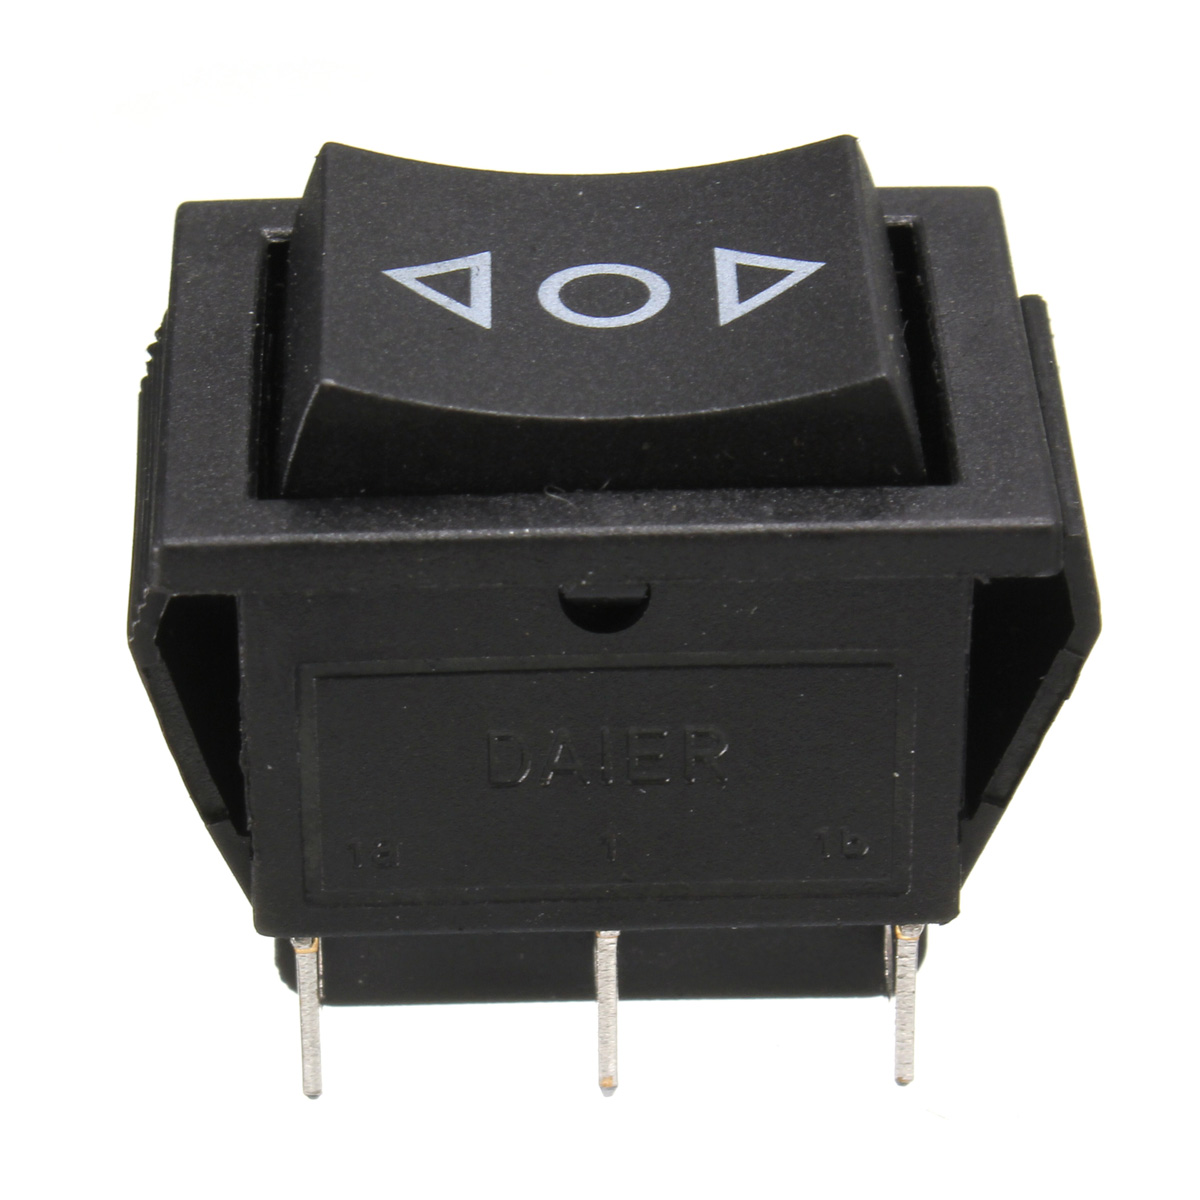 12 Volt 6-Pin DPDT Power Window Momentary Rocker Switch Control Button AC 250V/10A 125V/15A Car Power Window Switch image